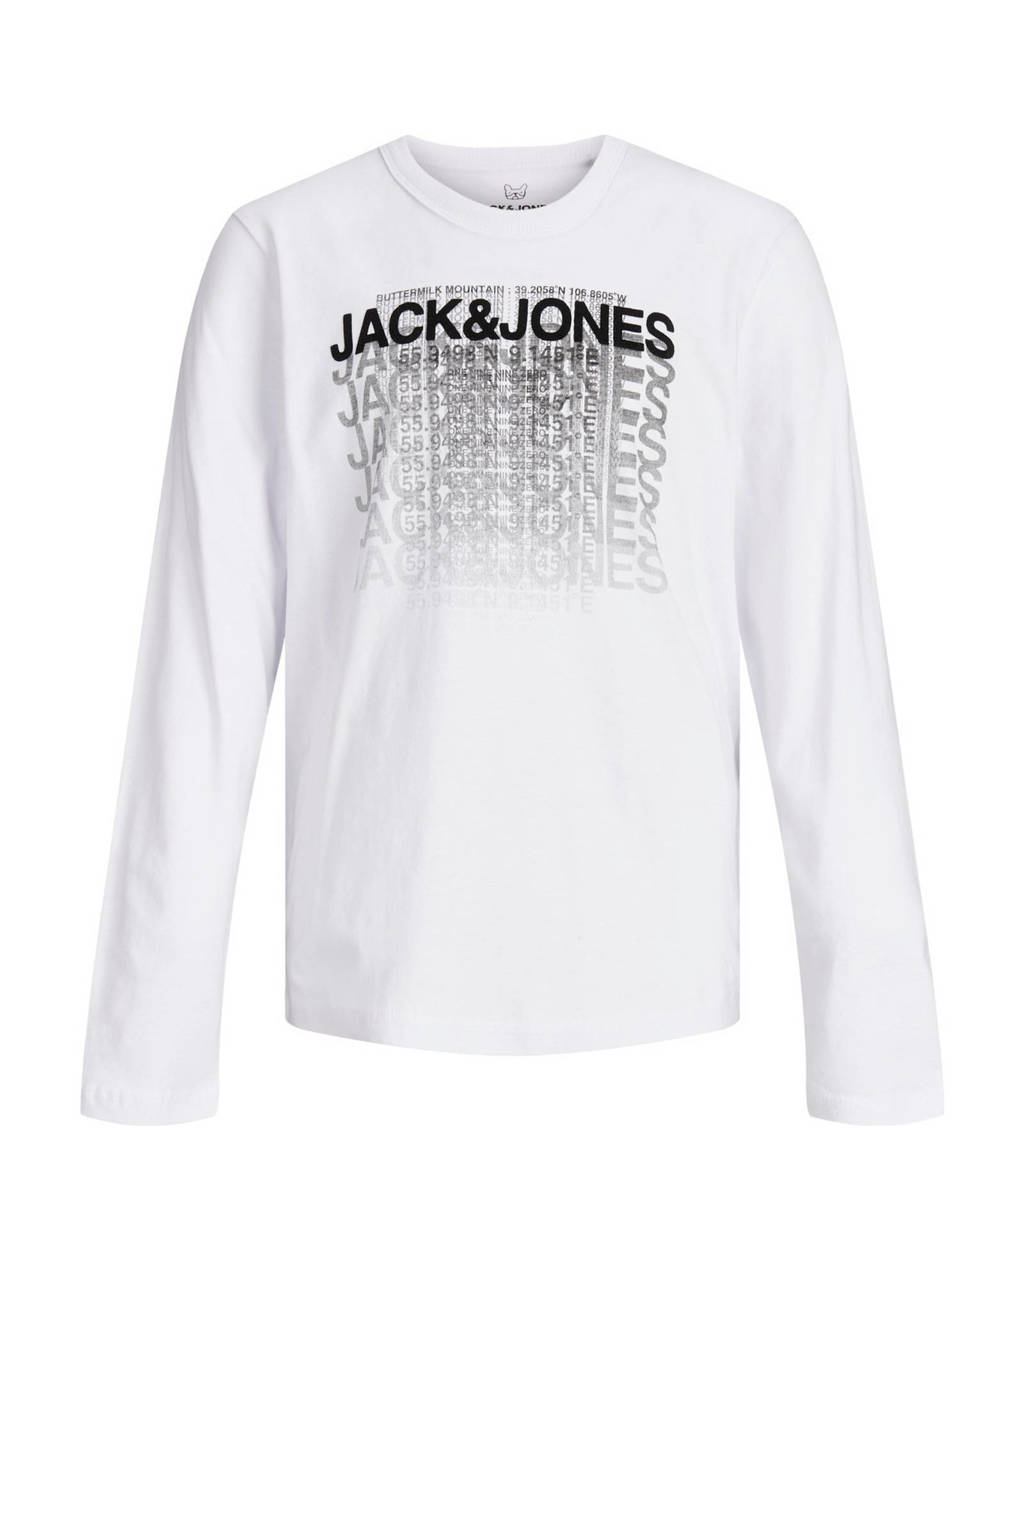 JACK & JONES JUNIOR longsleeve Club met tekst wit/zwart, Wit/zwart